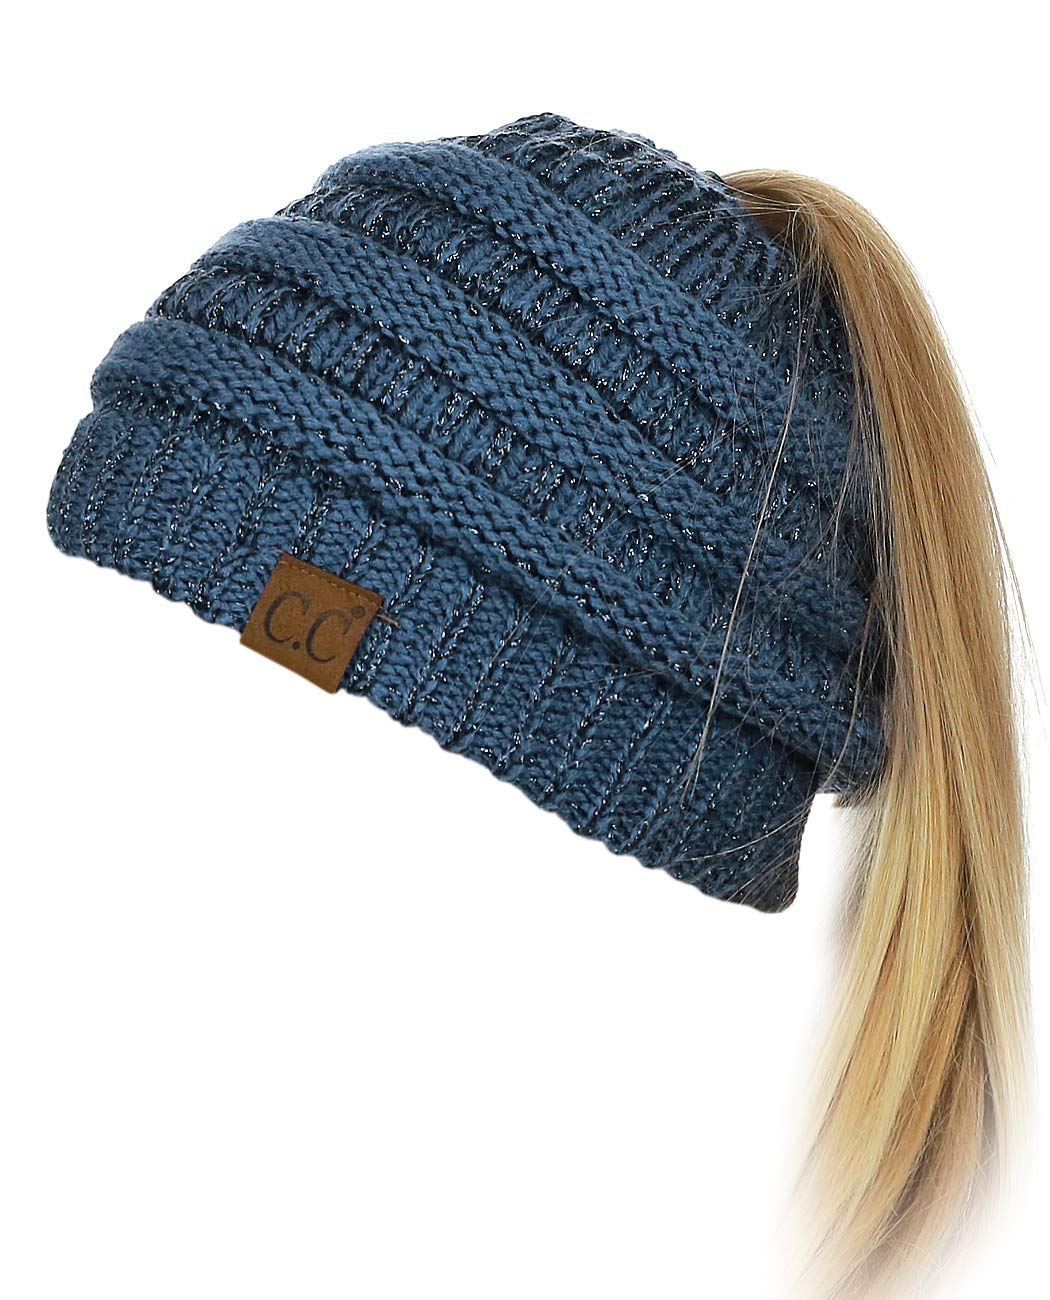 8edeb98dd29e94 Galleon - C.C BeanieTail Soft Stretch Cable Knit Messy High Bun Ponytail  Beanie Hat, Dark Denim Metallic